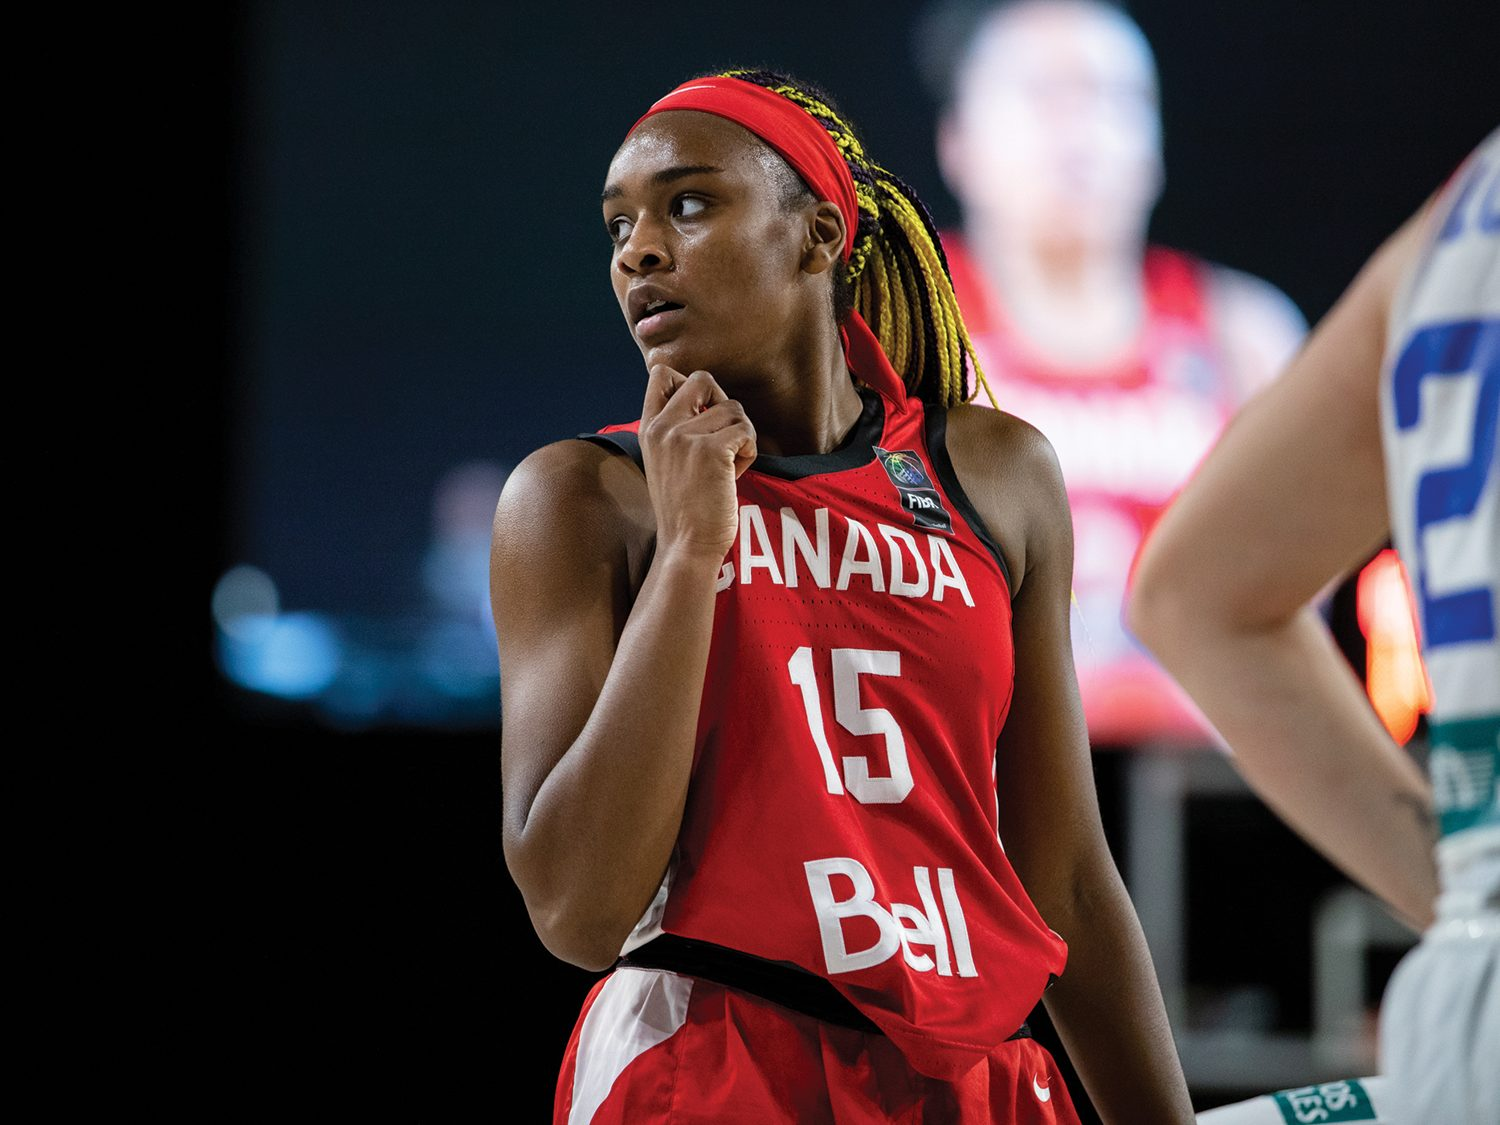 Current Husky Aaliyah Edwards in her Canada Olympic uniform